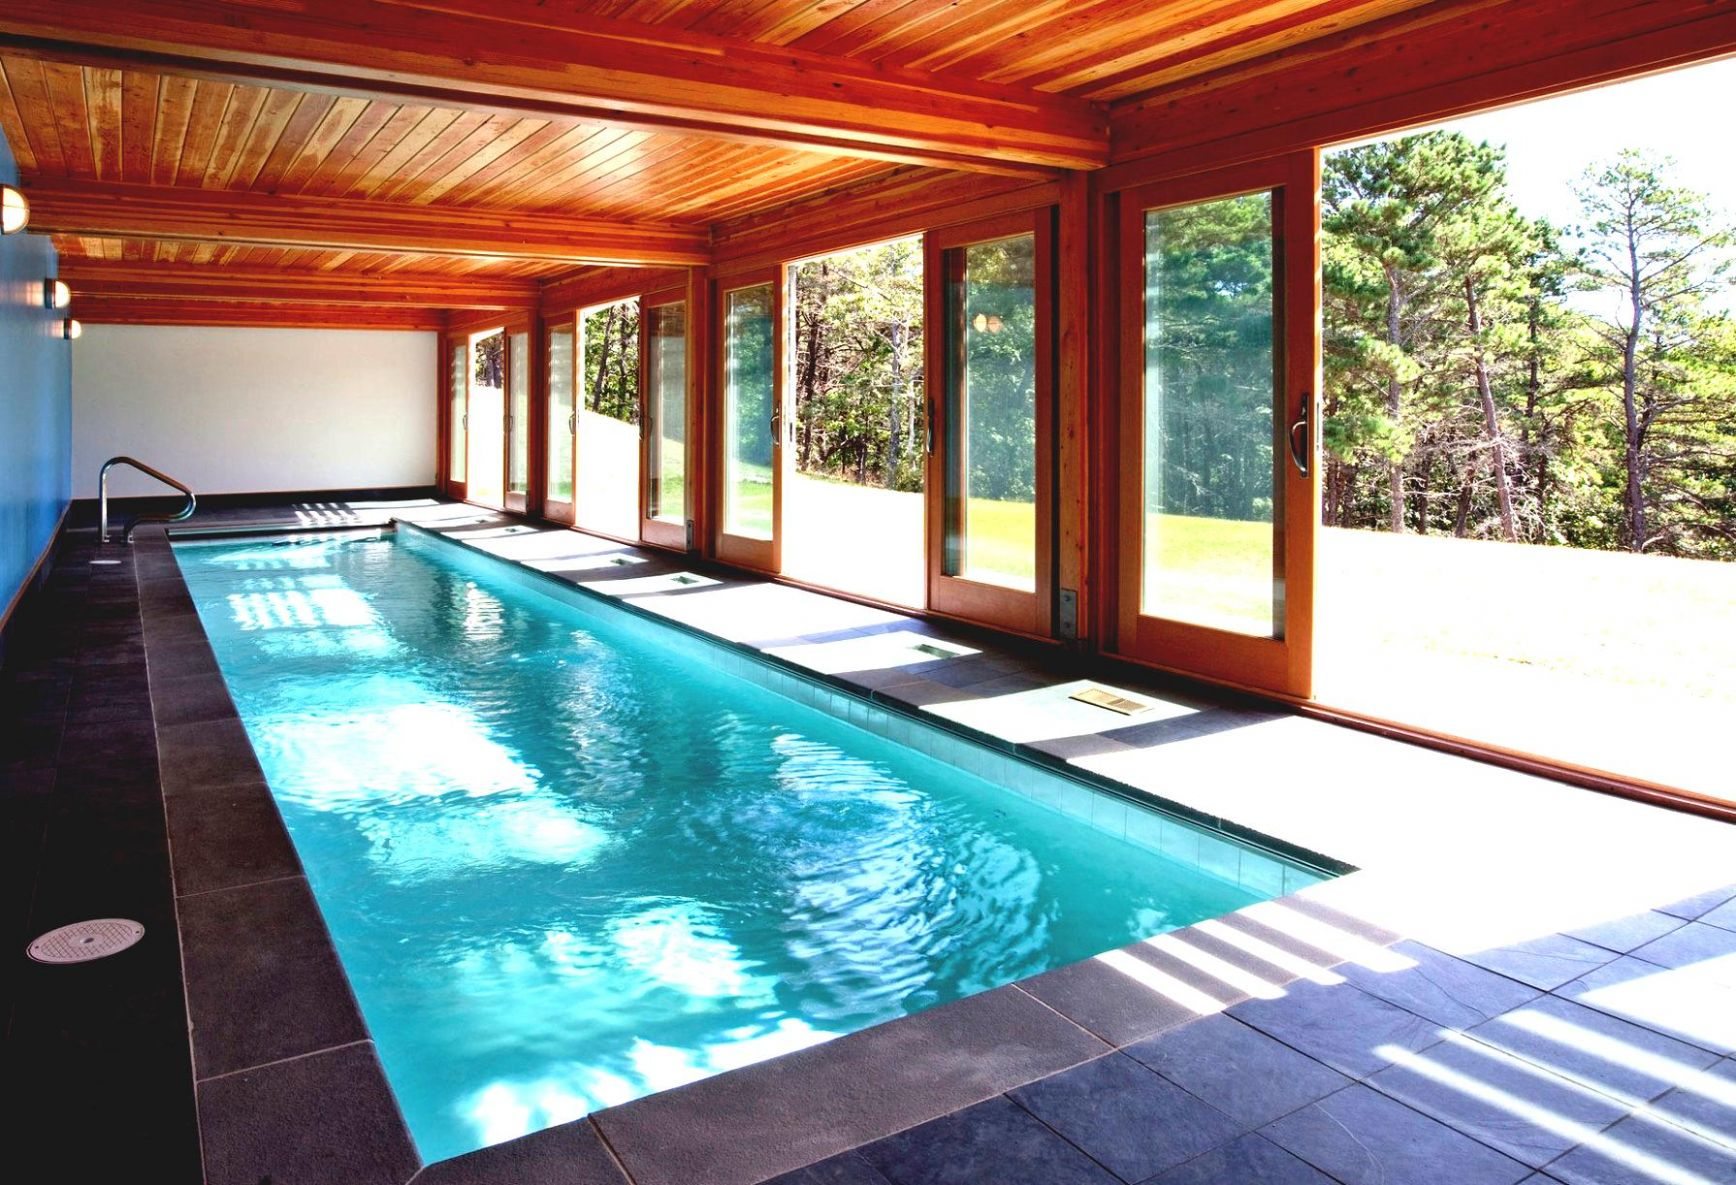 Indoor Pool House Designs Home Design Ideas Pools For Homes ...